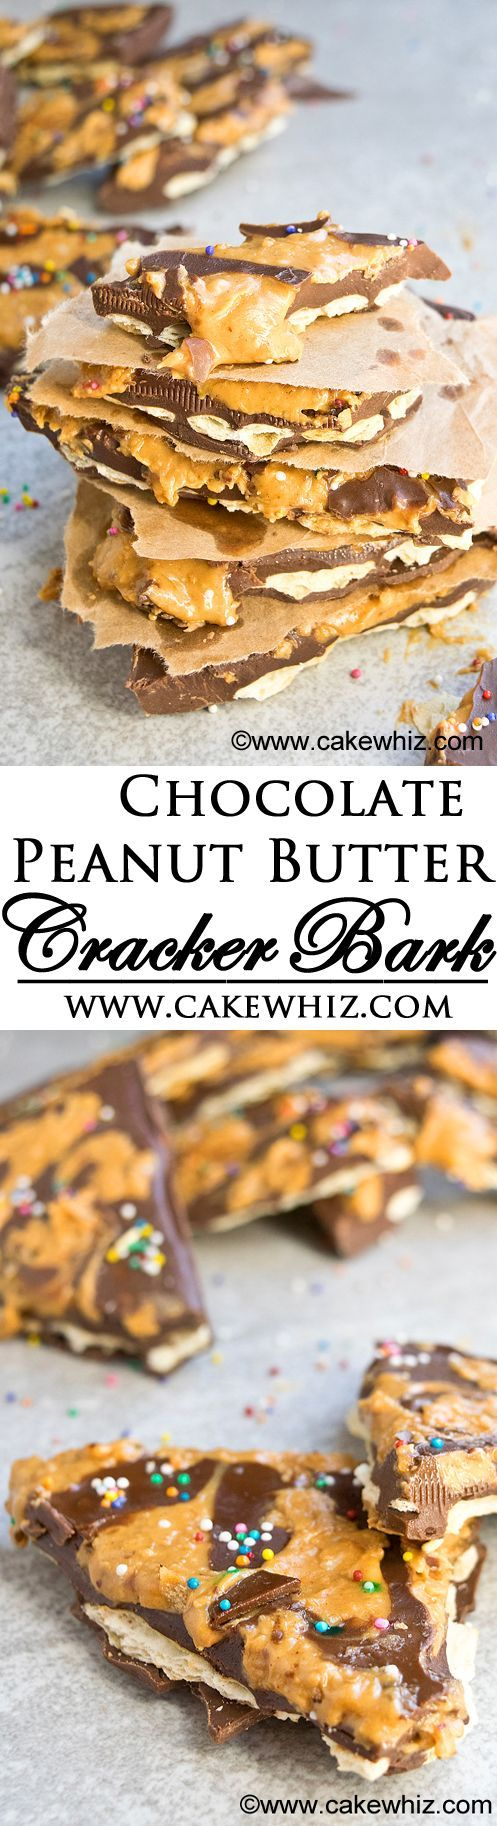 This sweet and salty CHOCOLATE PEANUT BUTTER CRACKER BARK is creamy yet crunchy! It's irresistible and really easy to make. Great for gift giving too!